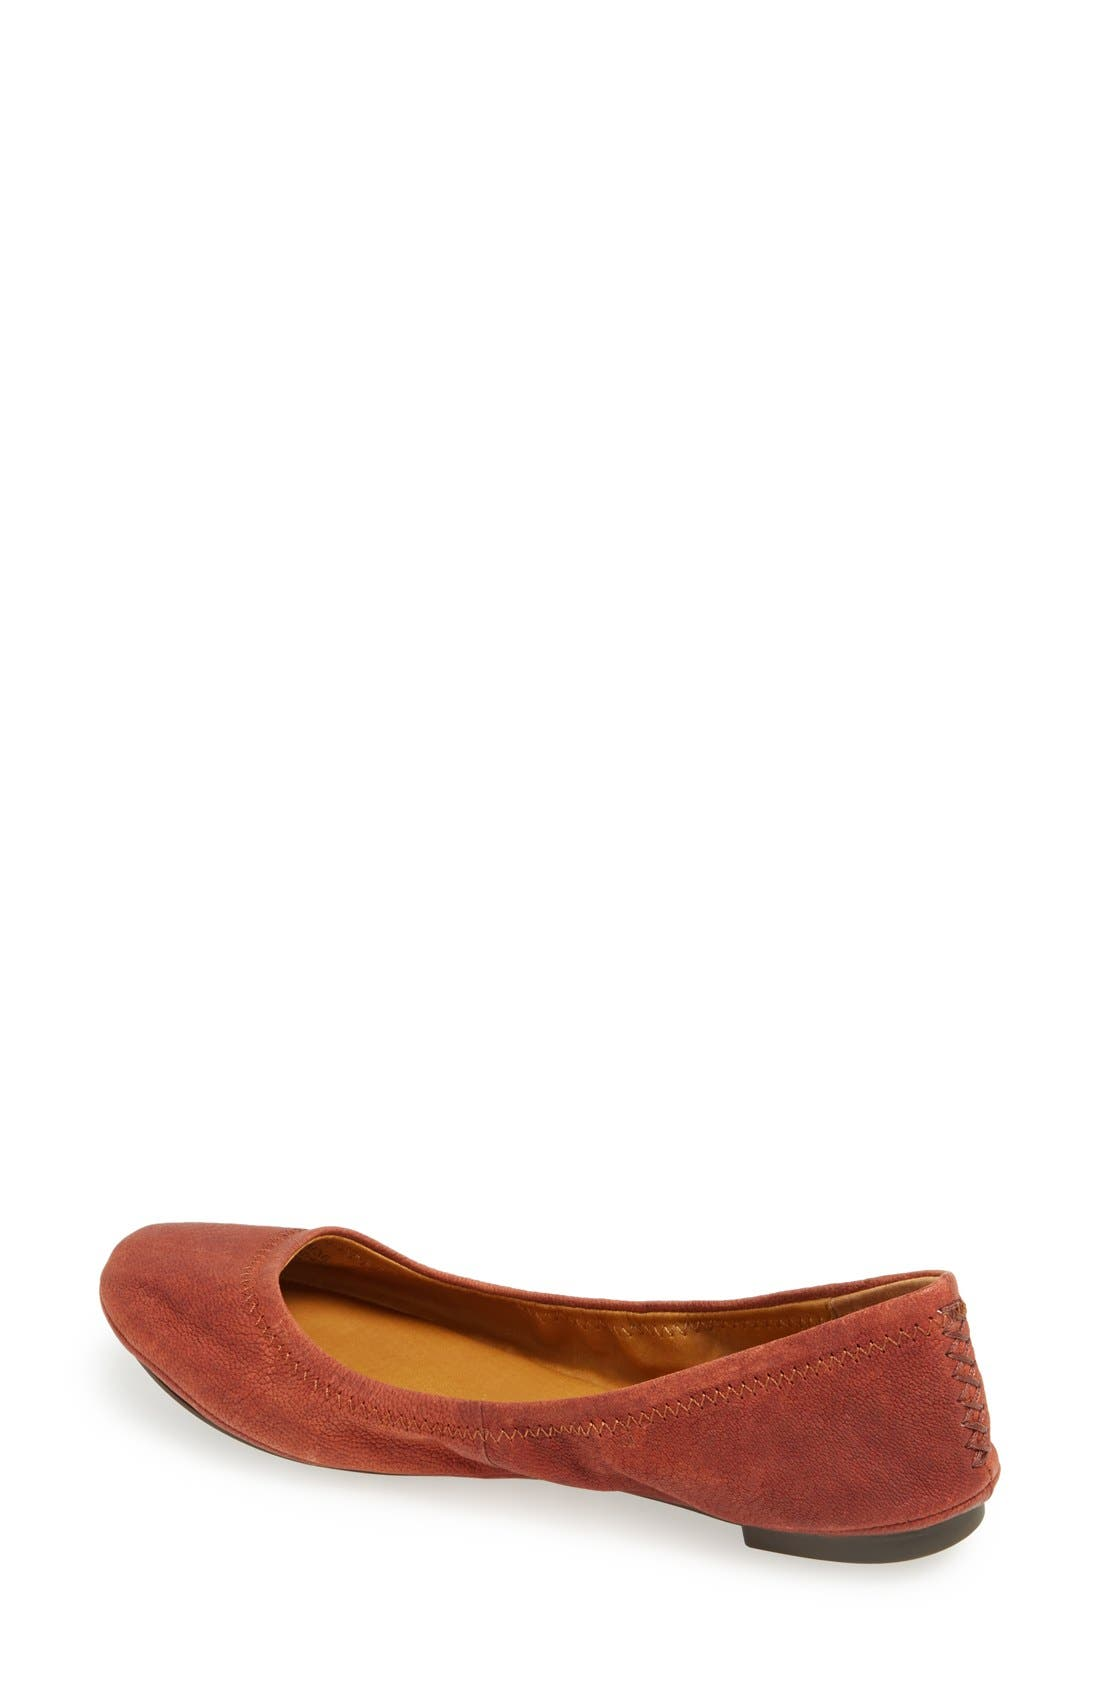 Alternate Image 2  - Lucky Brand 'Emmie' Flat